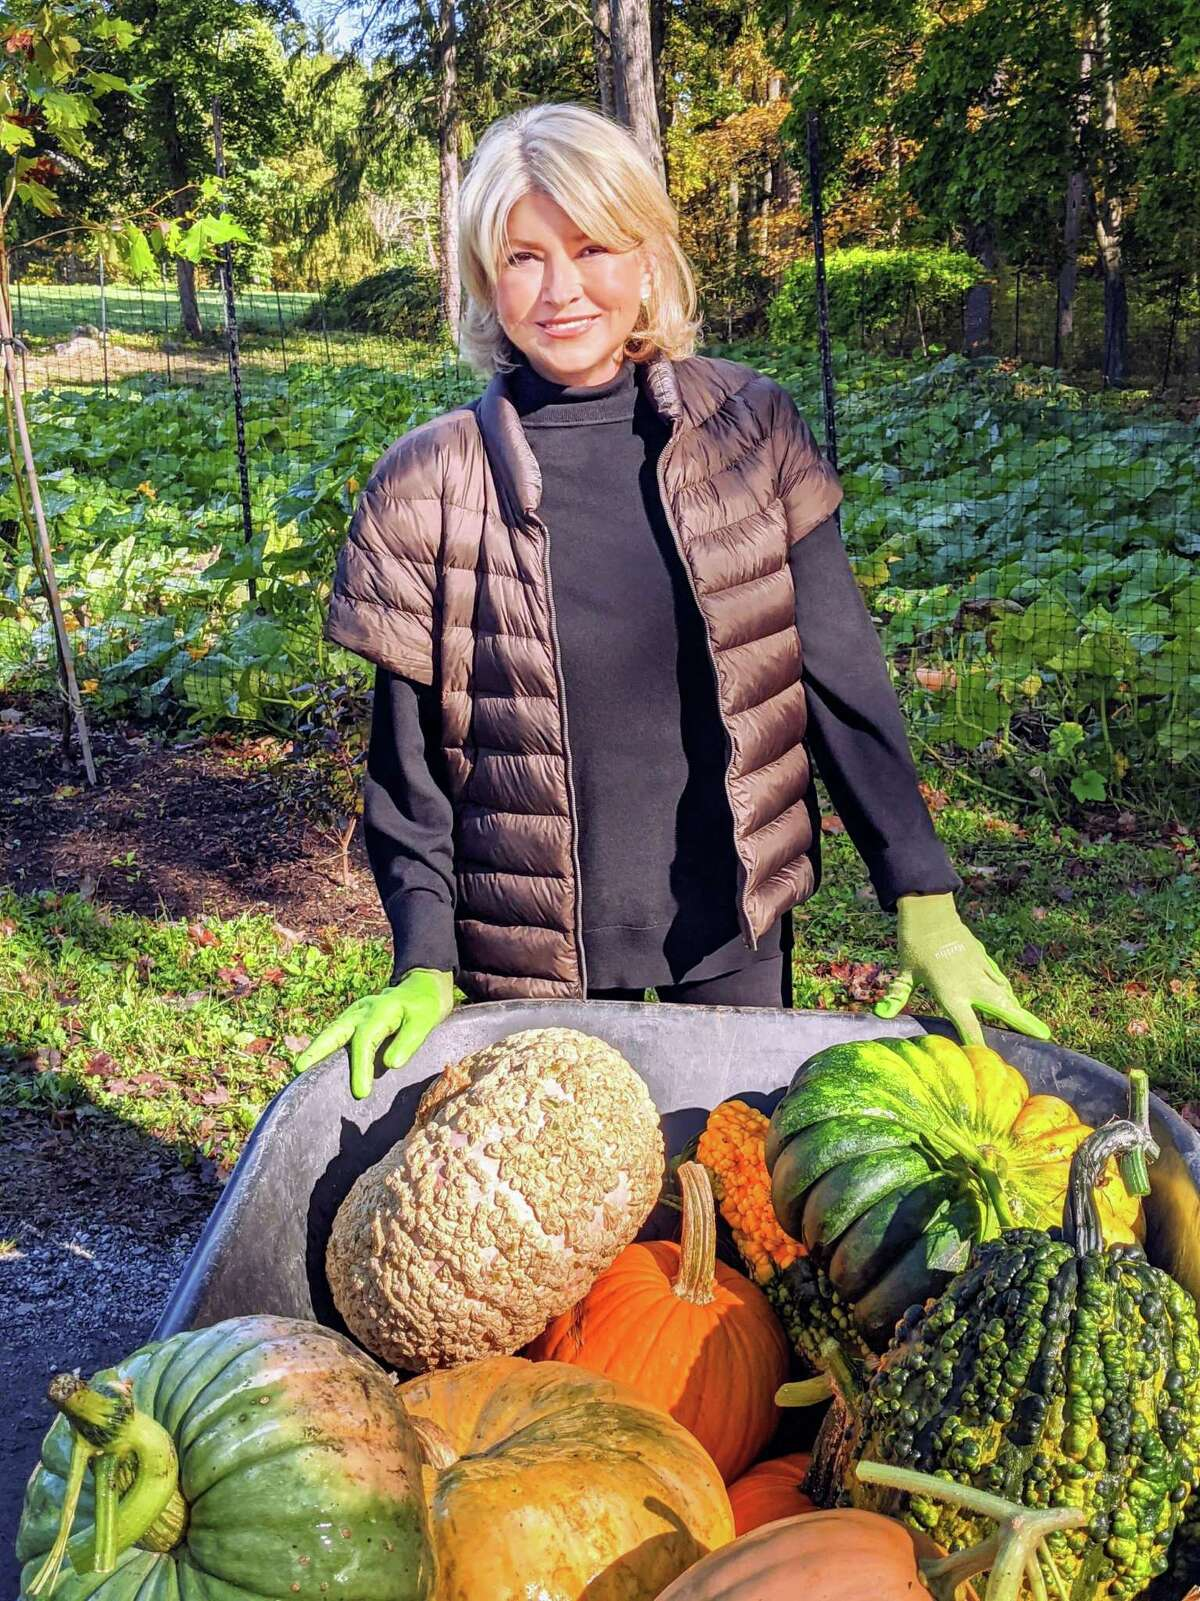 During the second season of her HGTV series premiering Oct. 28, former Westport, Conn., resident Martha Stewart will prep her Bedford, N.Y., farm for autumn and winter, as well as share festive holiday ideas to help families safely celebrate at home. And, once again, Stewart's superfans and celebrity friends will reach out for video check-ins so that she can counsel them on their own home projects. The new season of